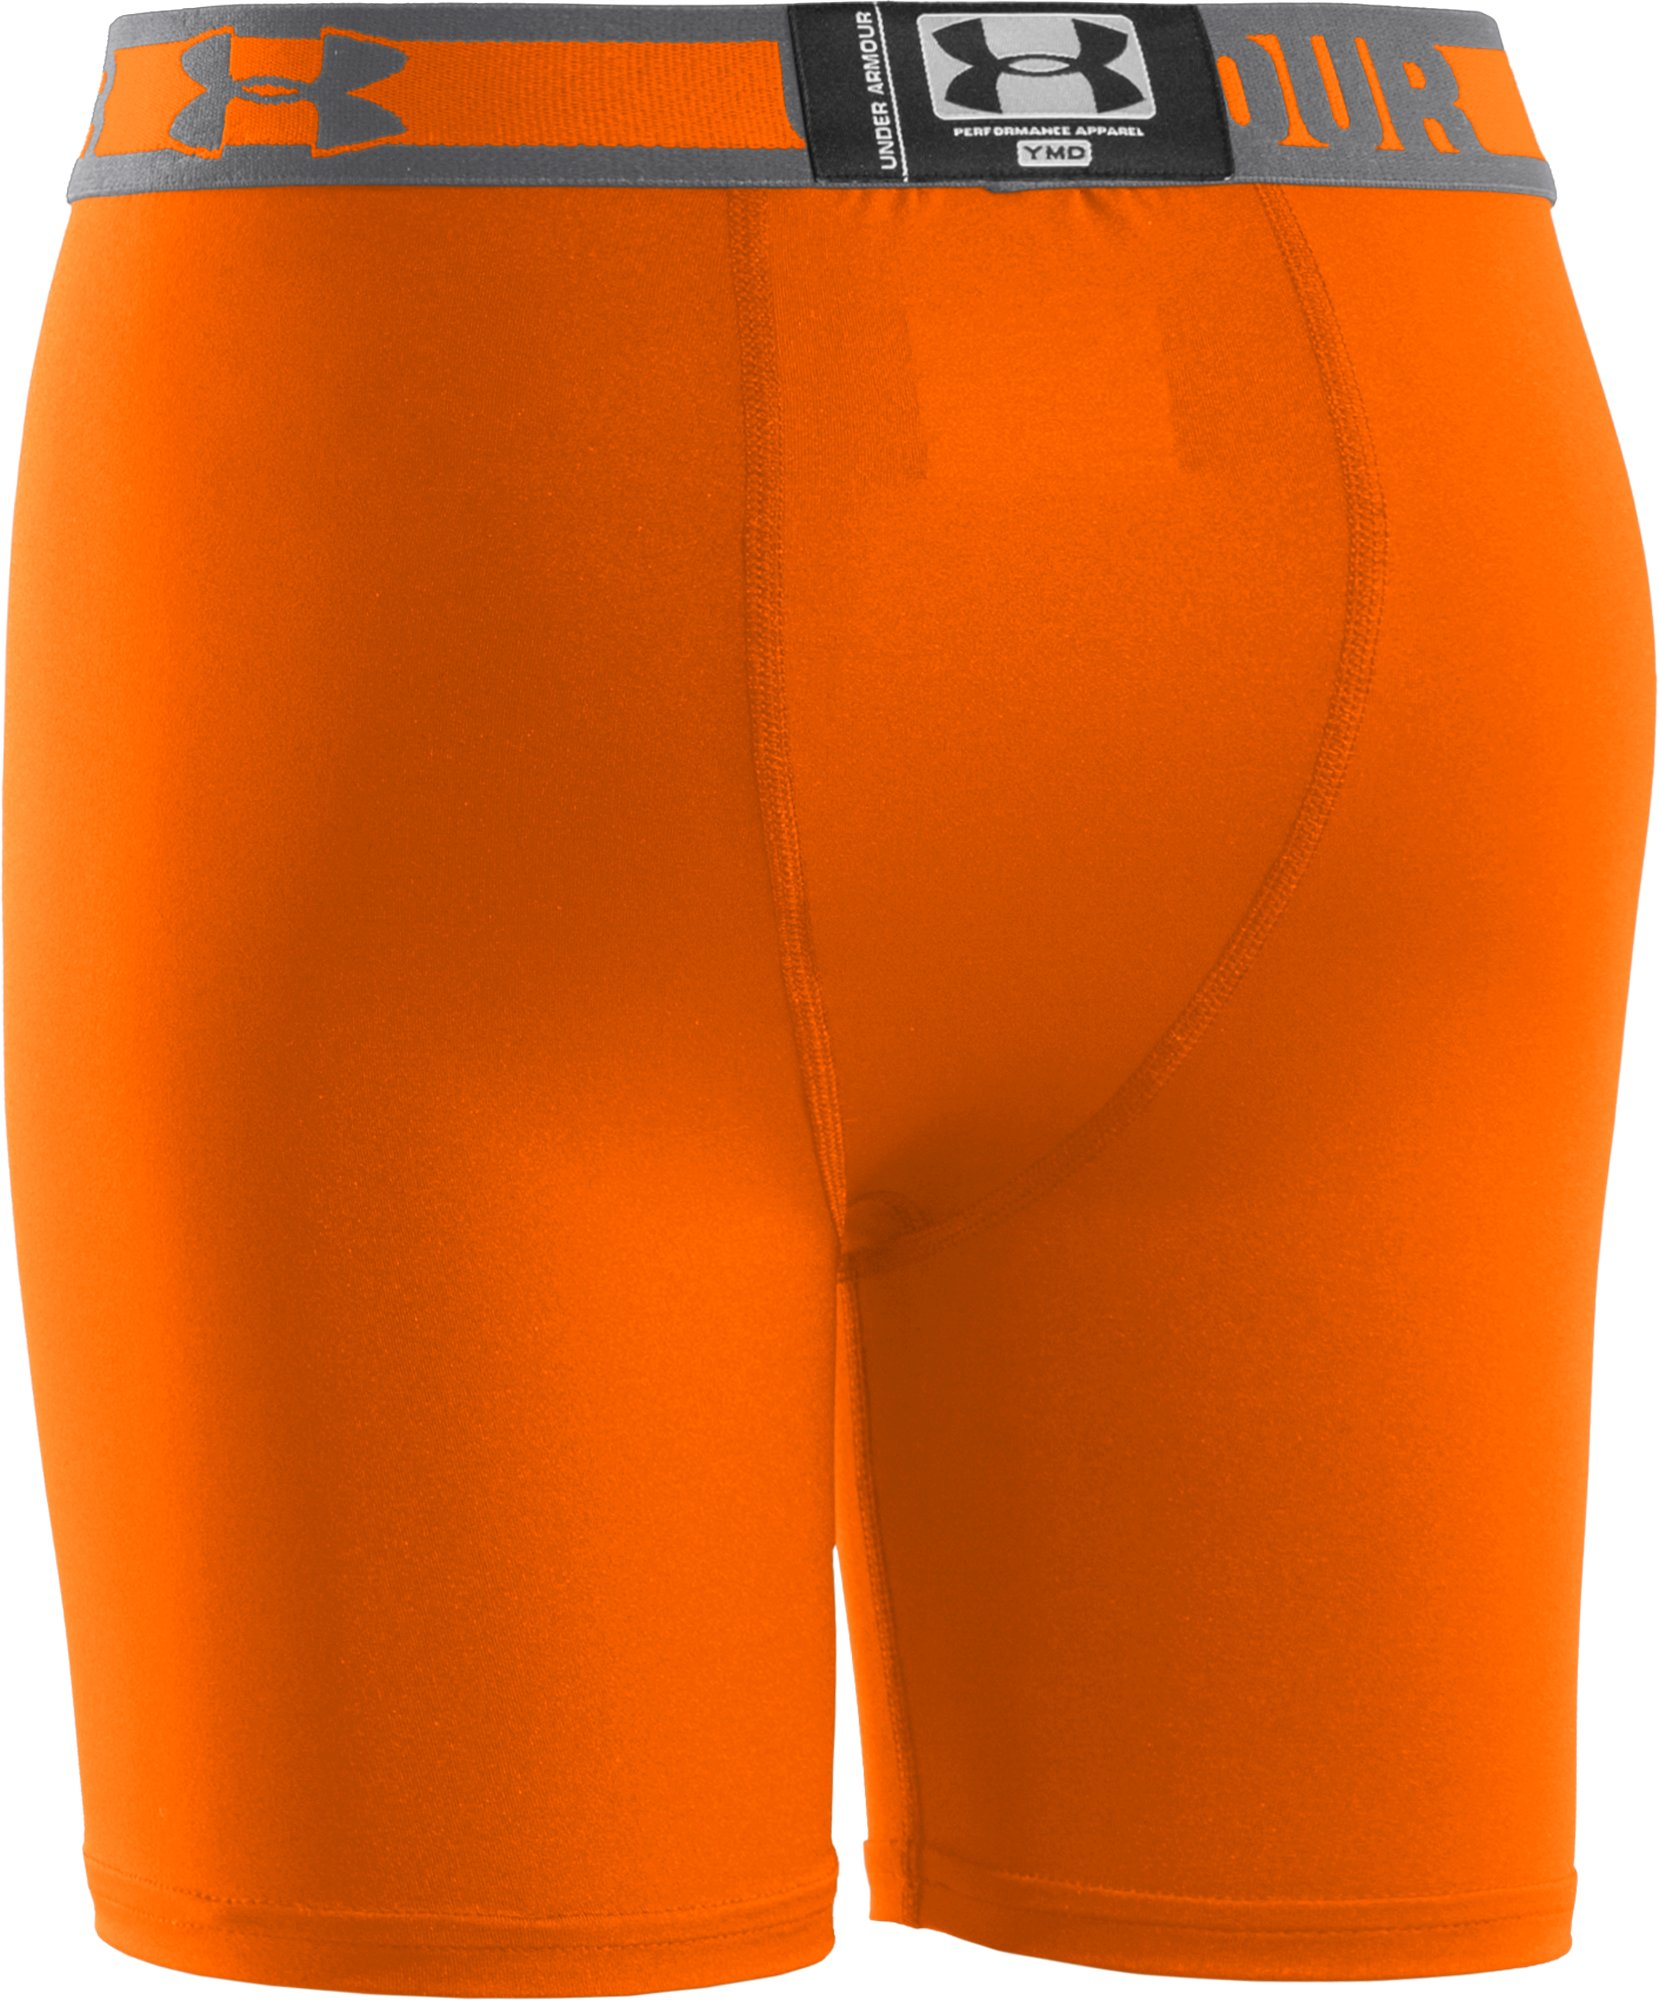 "Boys' HeatGear® Sonic 4"" Fitted Shorts, Blaze Orange"